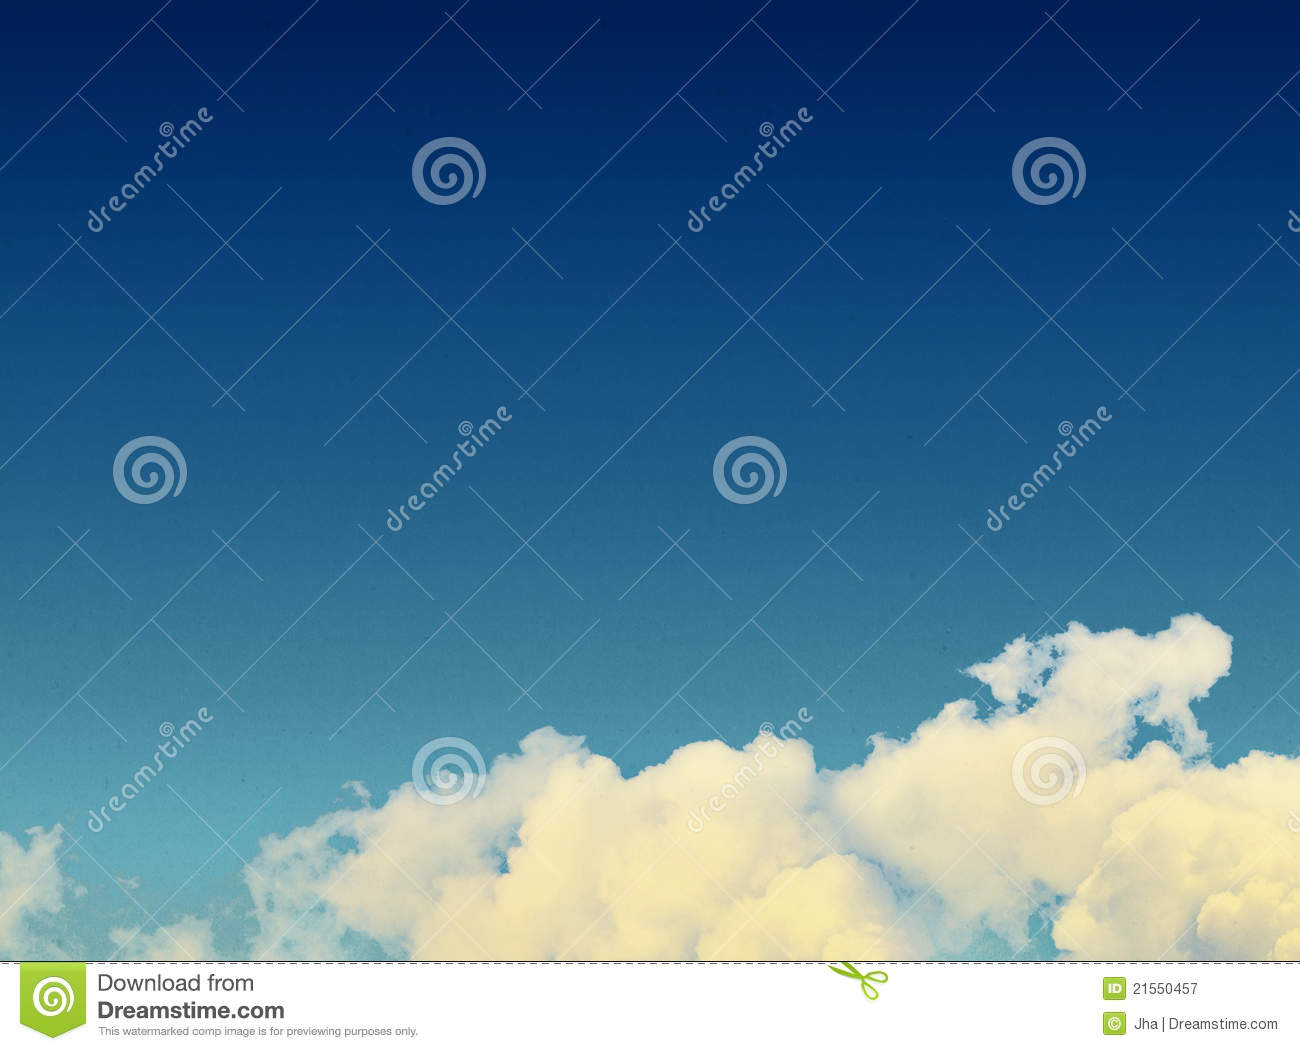 Dreamy Clouds Royalty Free Stock Photography - Image: 21550457